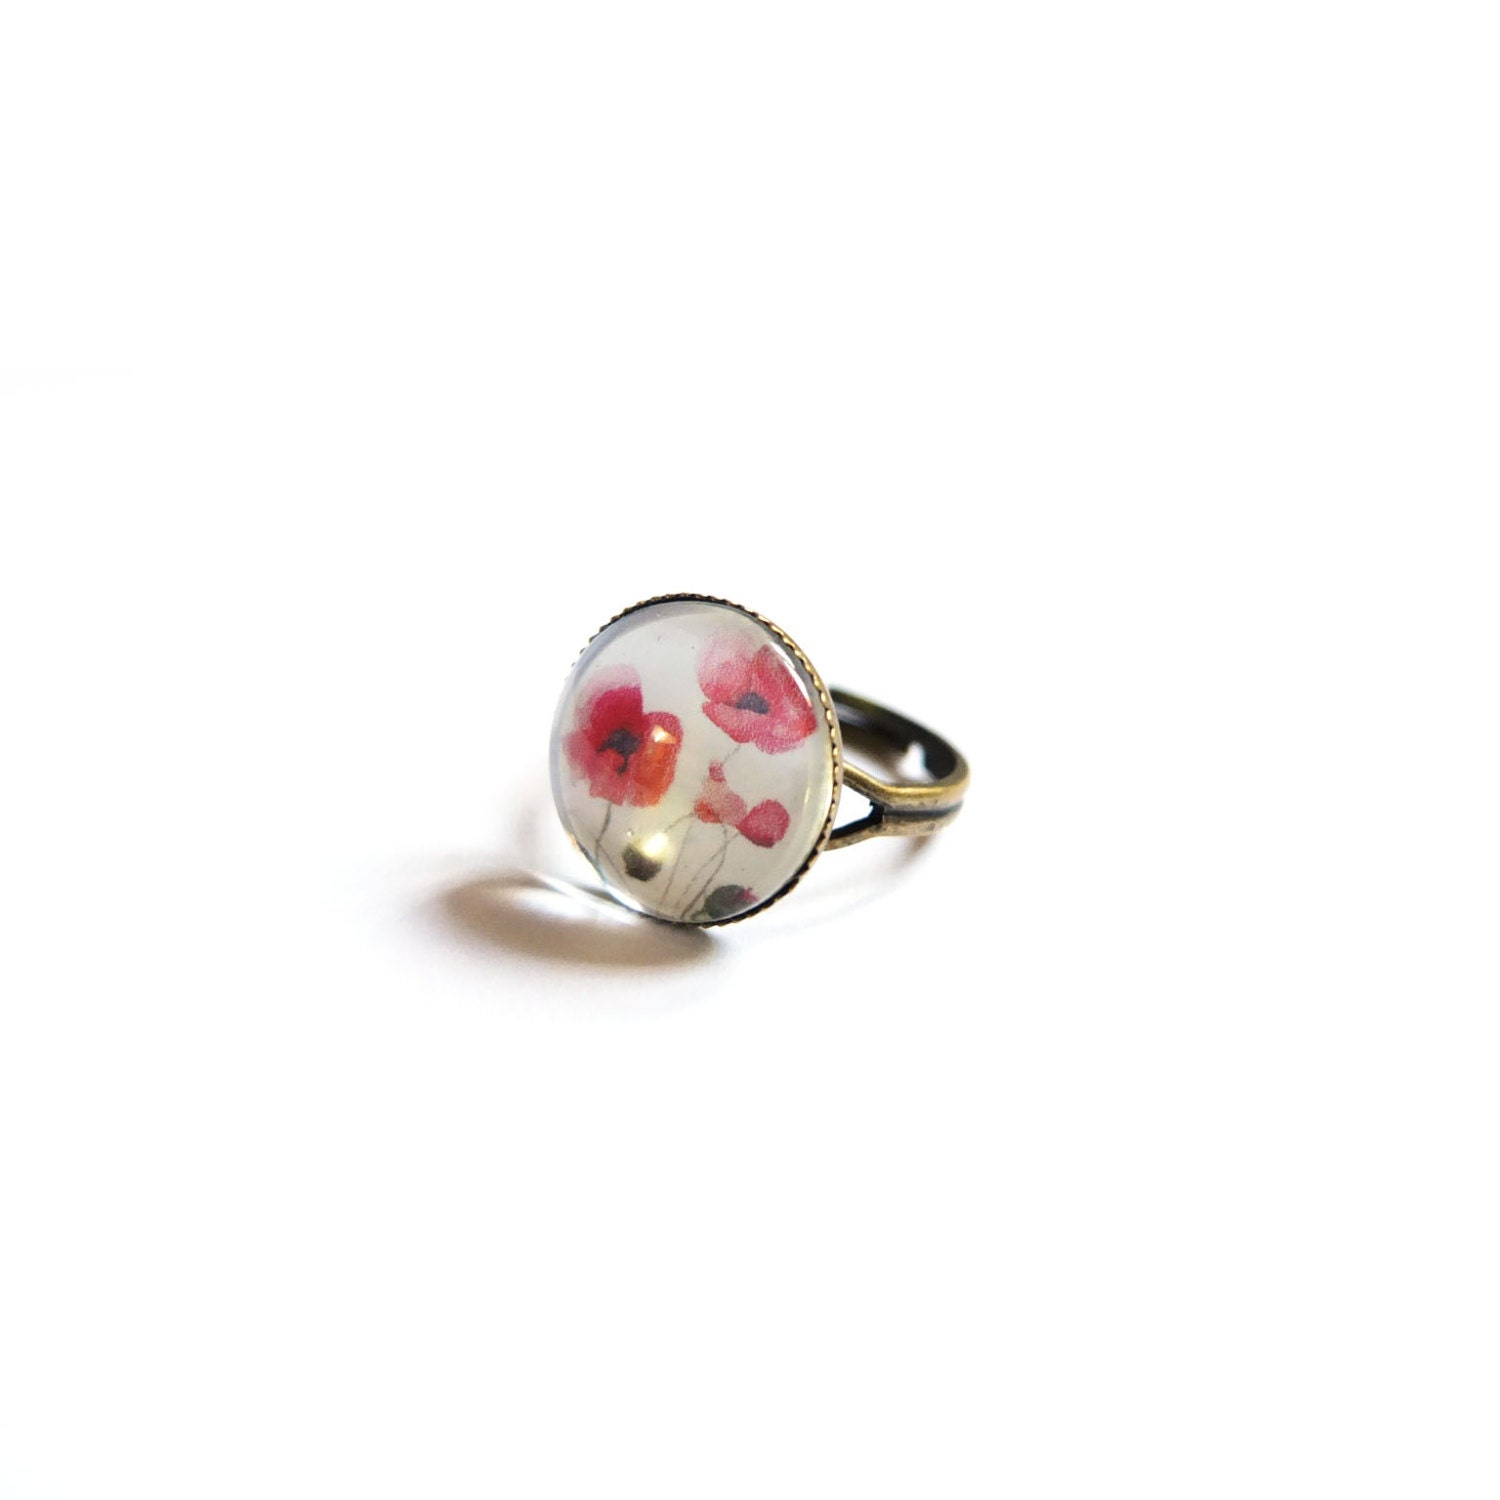 Poppy Ring Red Poppy Ring Flower Ring by LittlePiecesWithLove